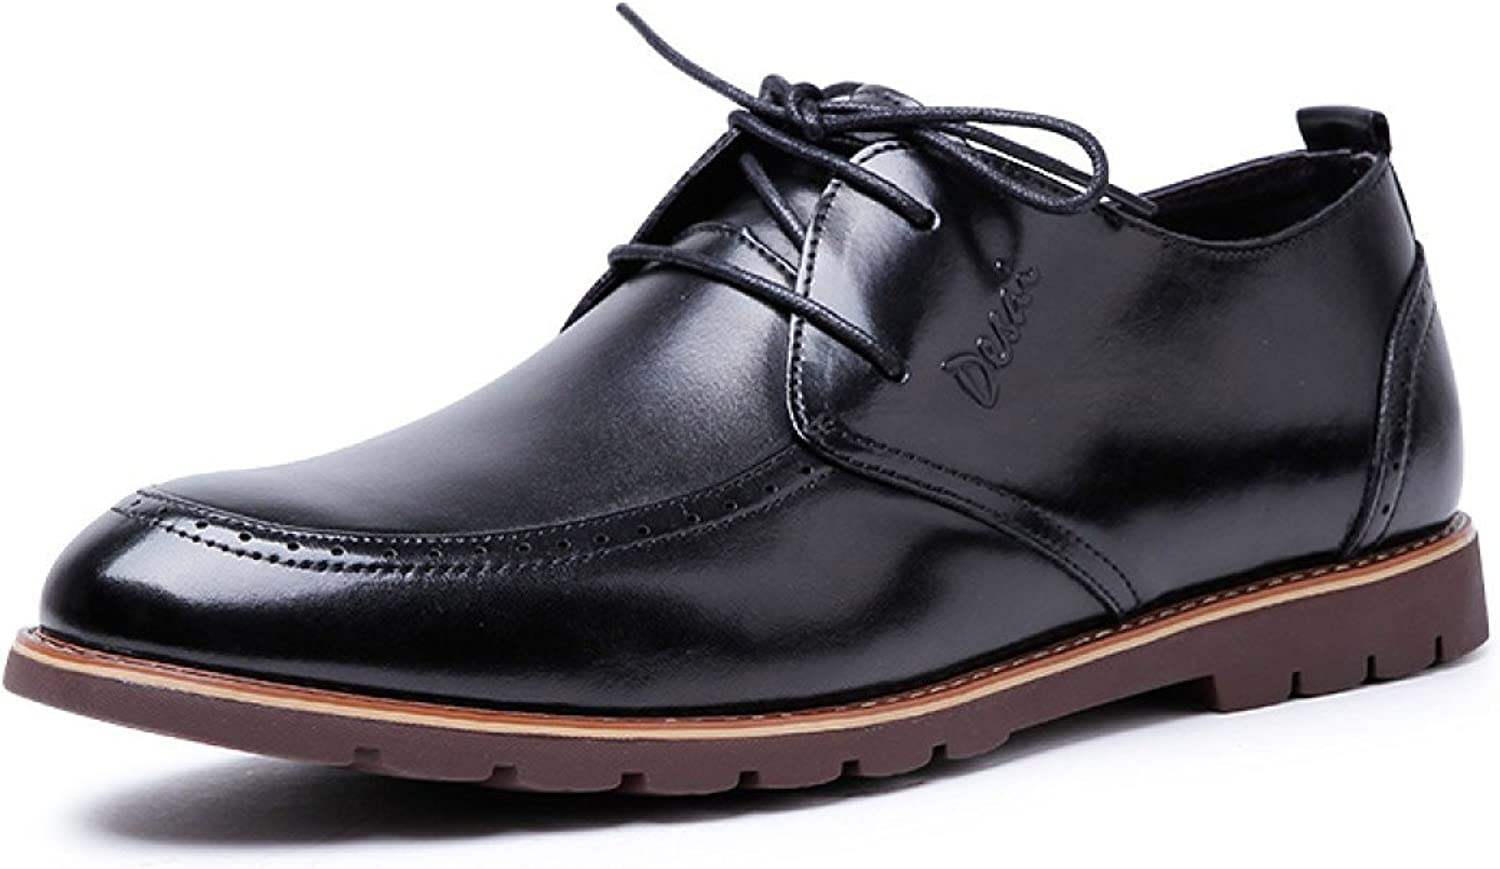 Mens Lace Up Leather Lined shoes Formal Wedding Occasion Casual Oxford shoes